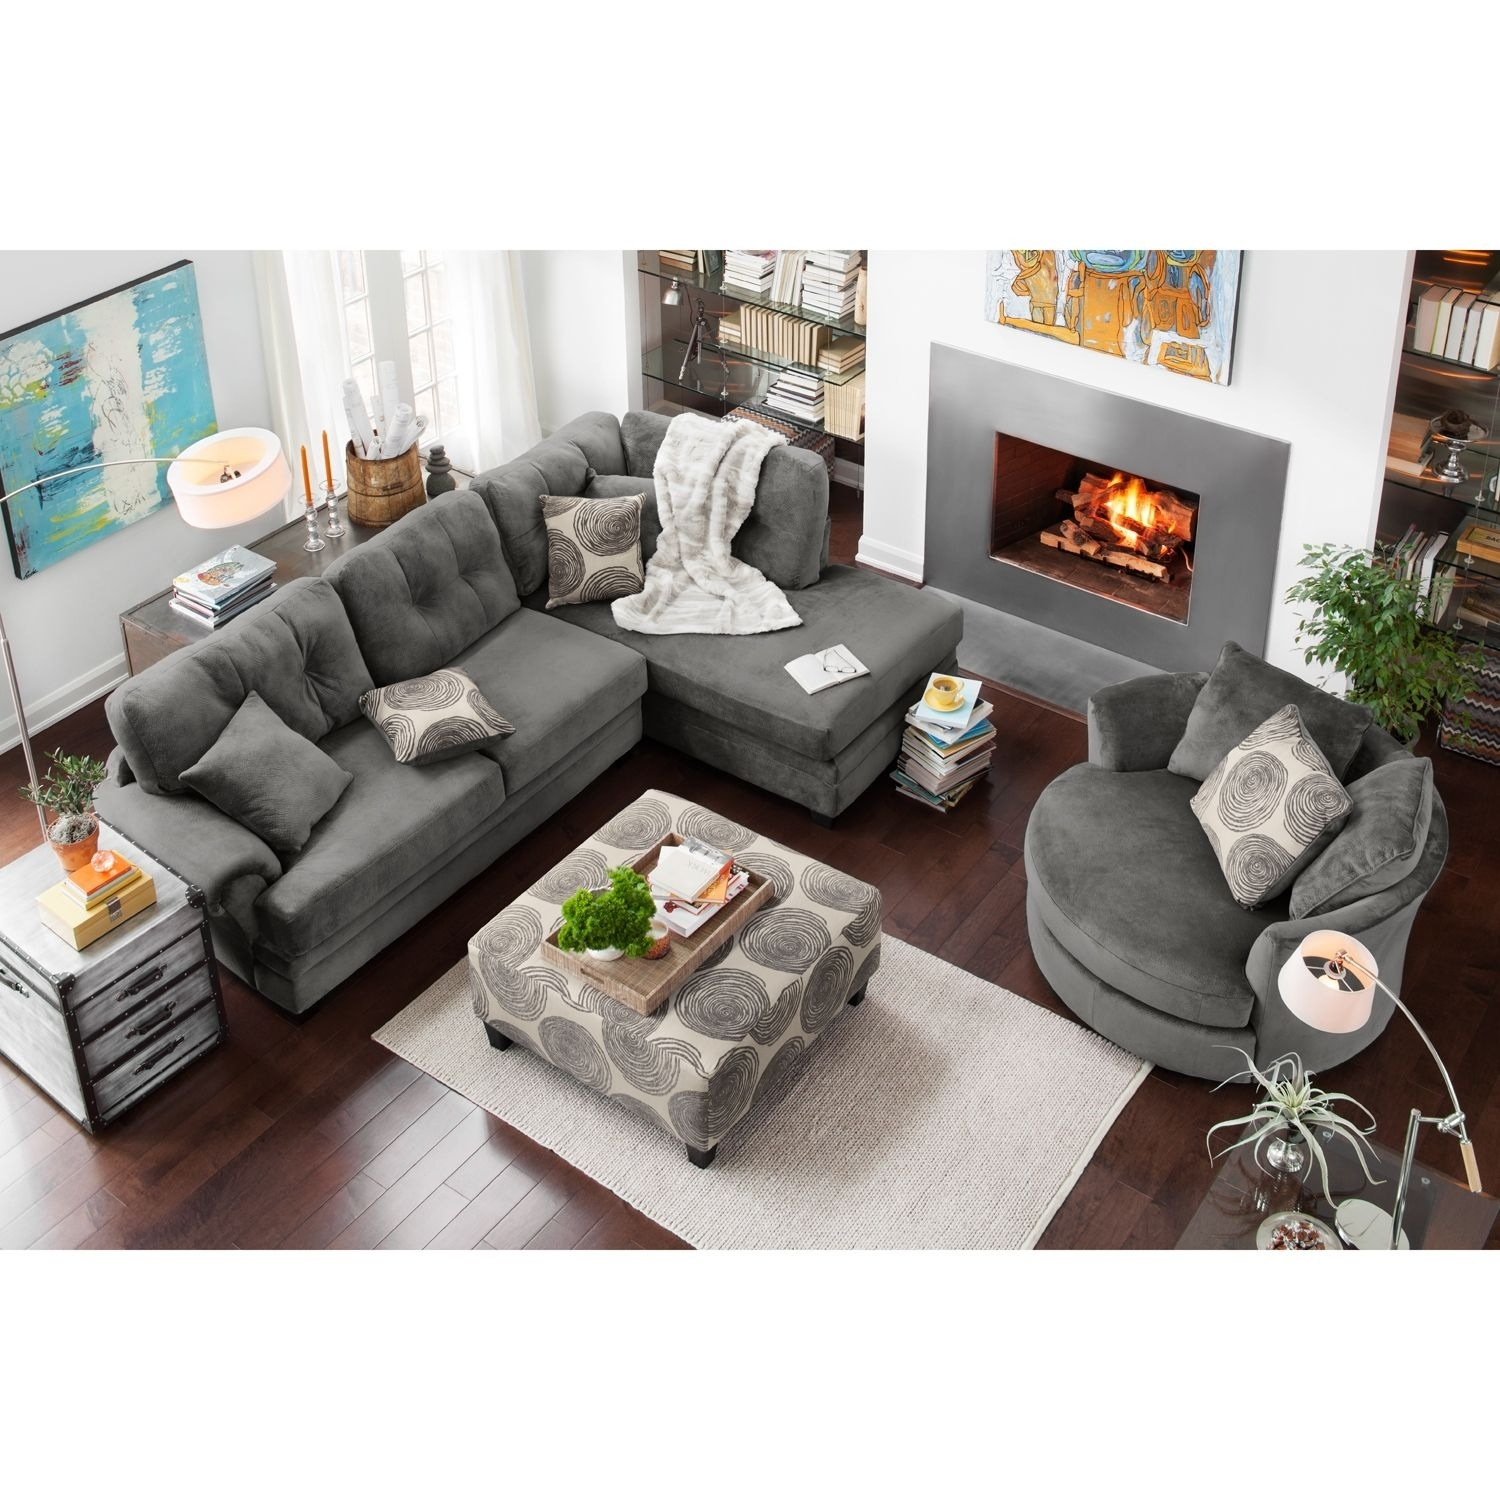 Cordelle 2 Piece Right Facing Chaise Sectional – Gray | City Throughout Value City Sectional Sofas (Image 2 of 10)